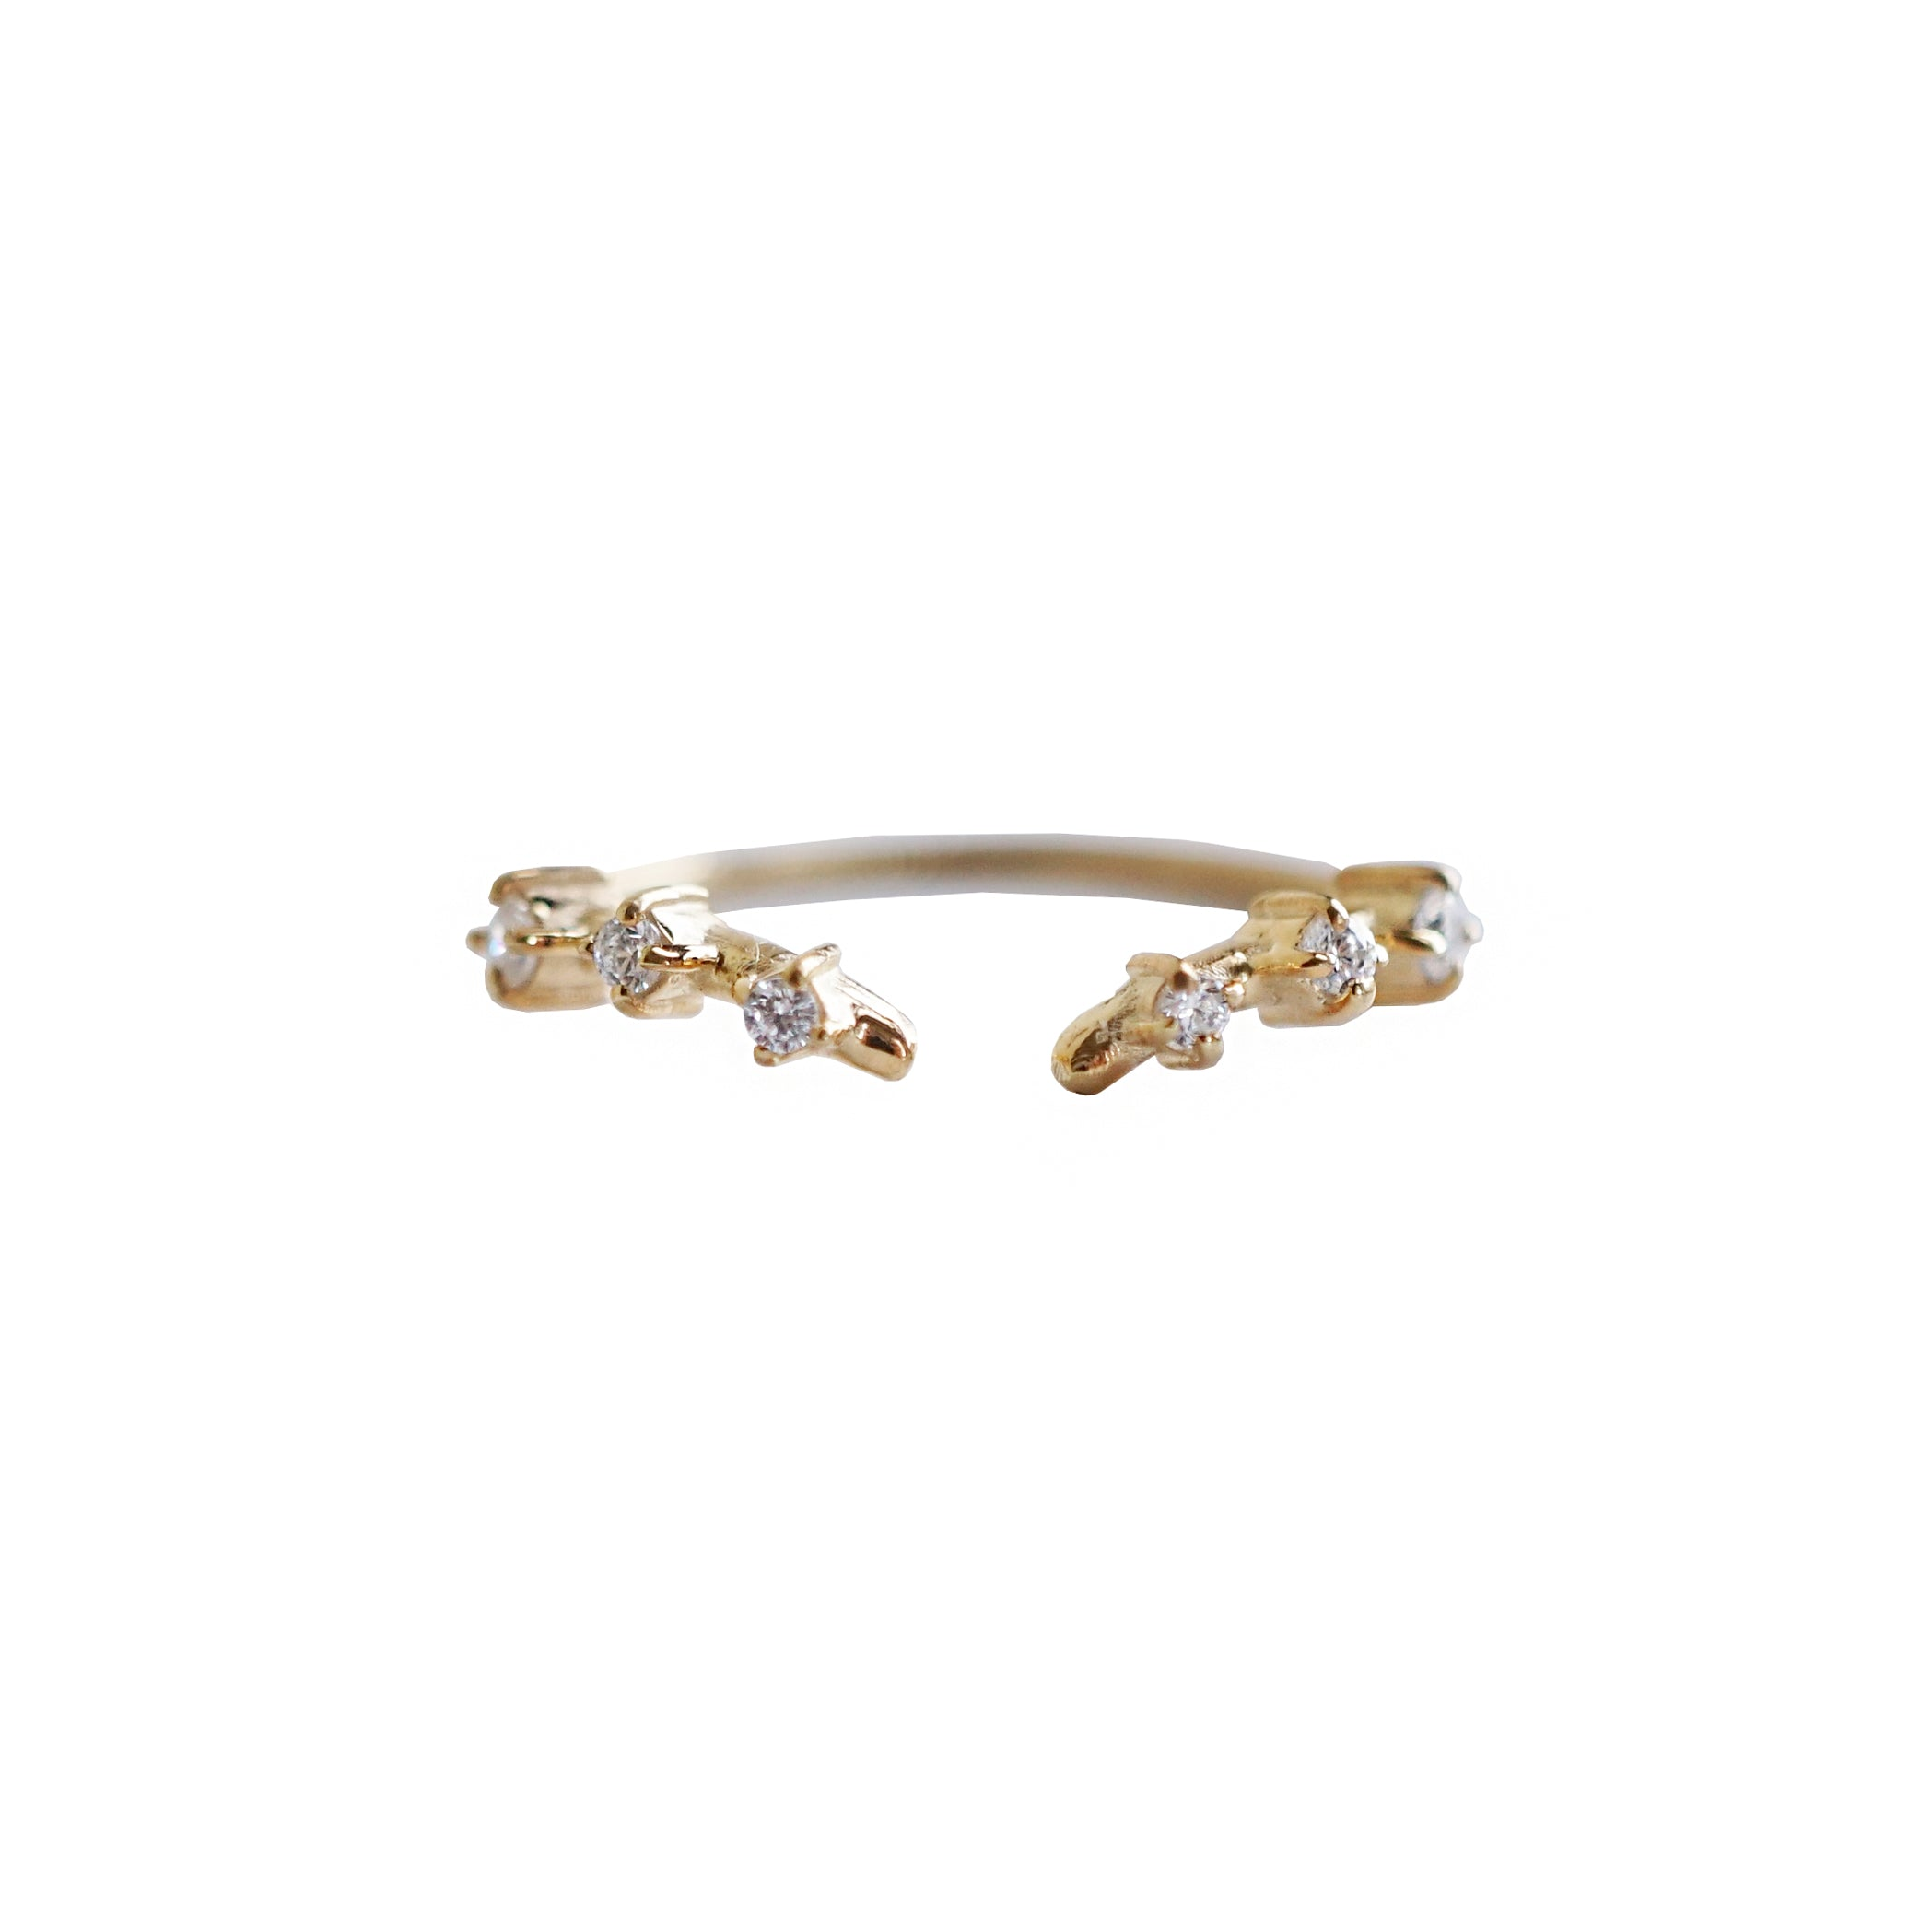 Rose Thorn Ring Band - Tippy Taste Jewelry